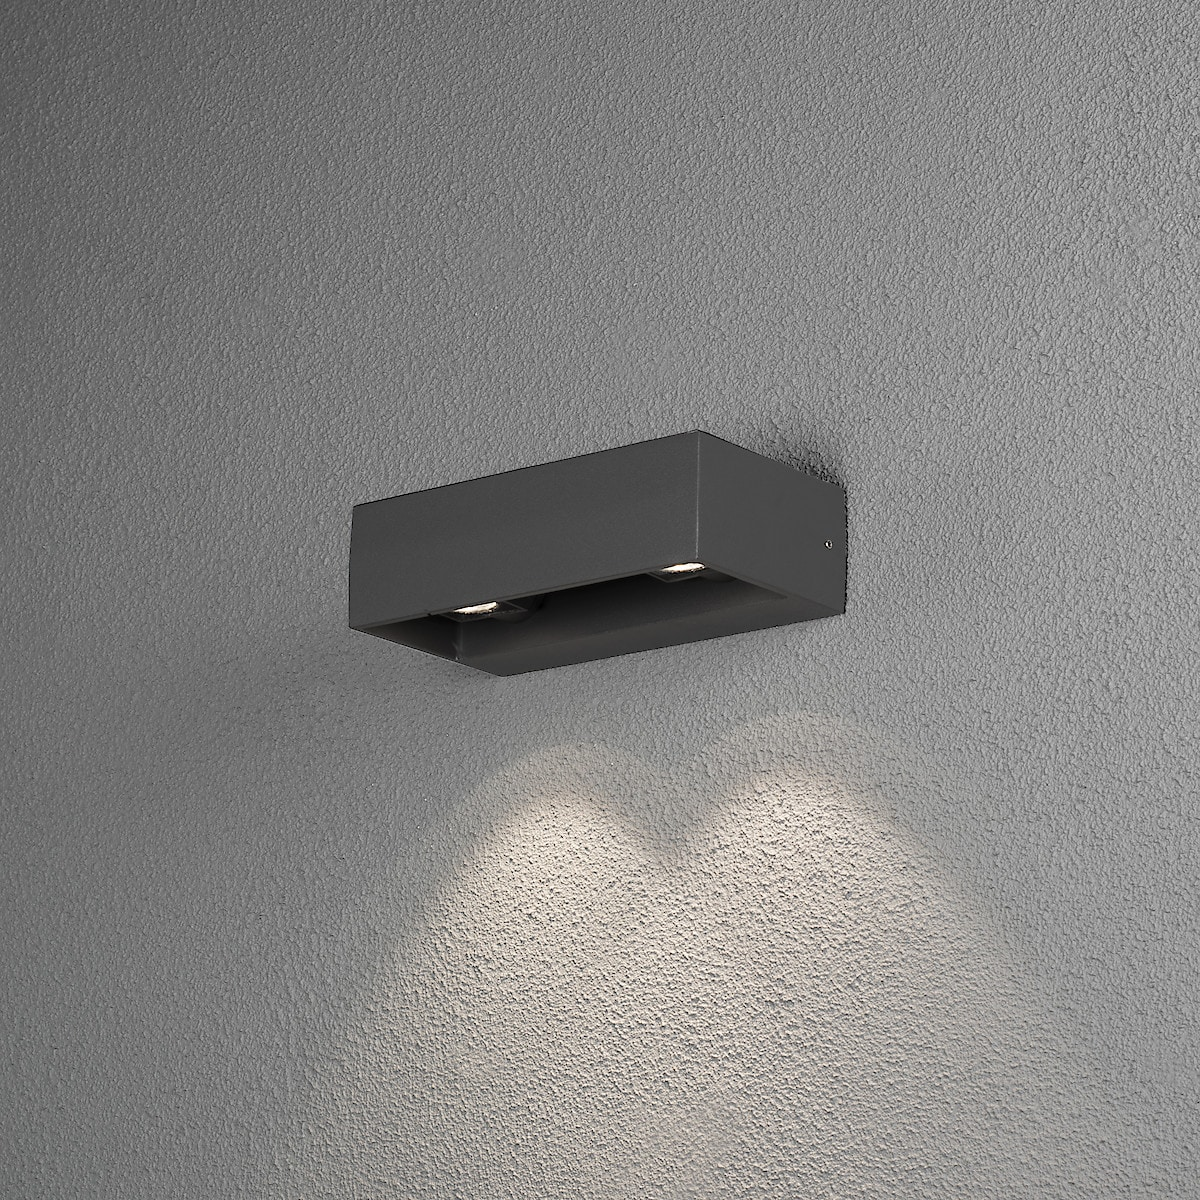 Konstsmide Monza LED Wall Light